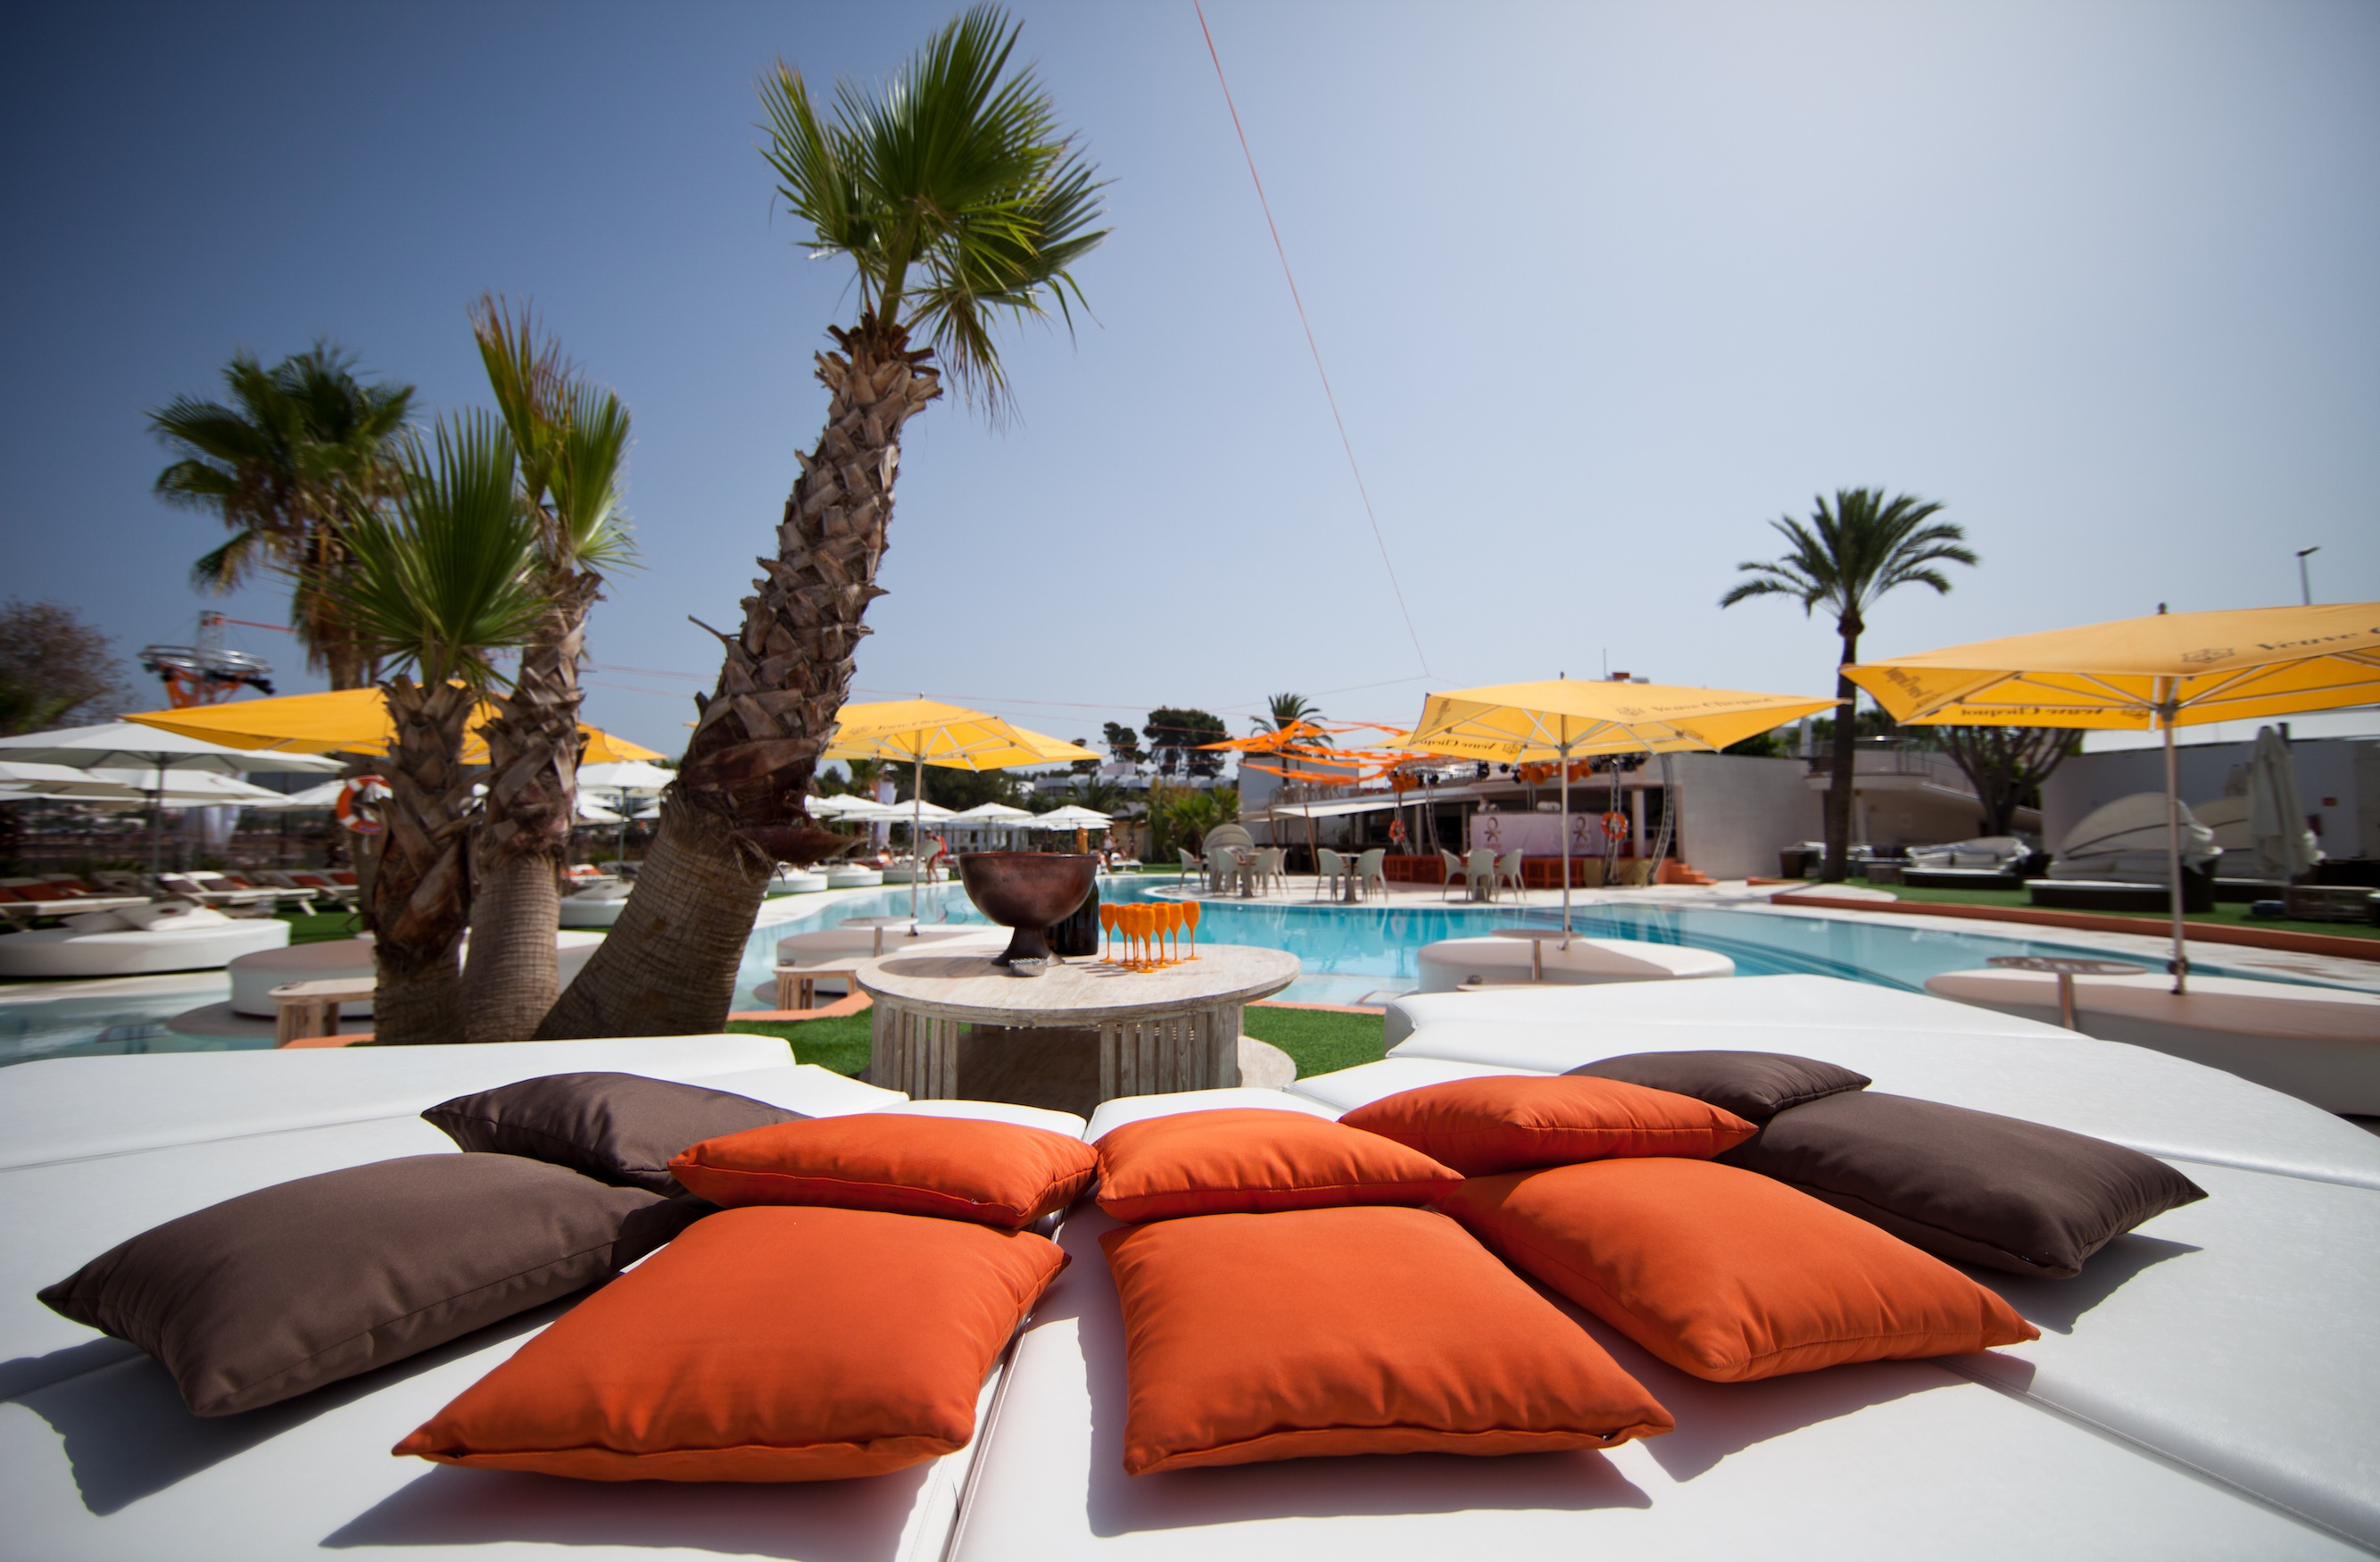 Ocean Beach Club Ibiza 1 5th venue added to Ibiza Gathering itinerary